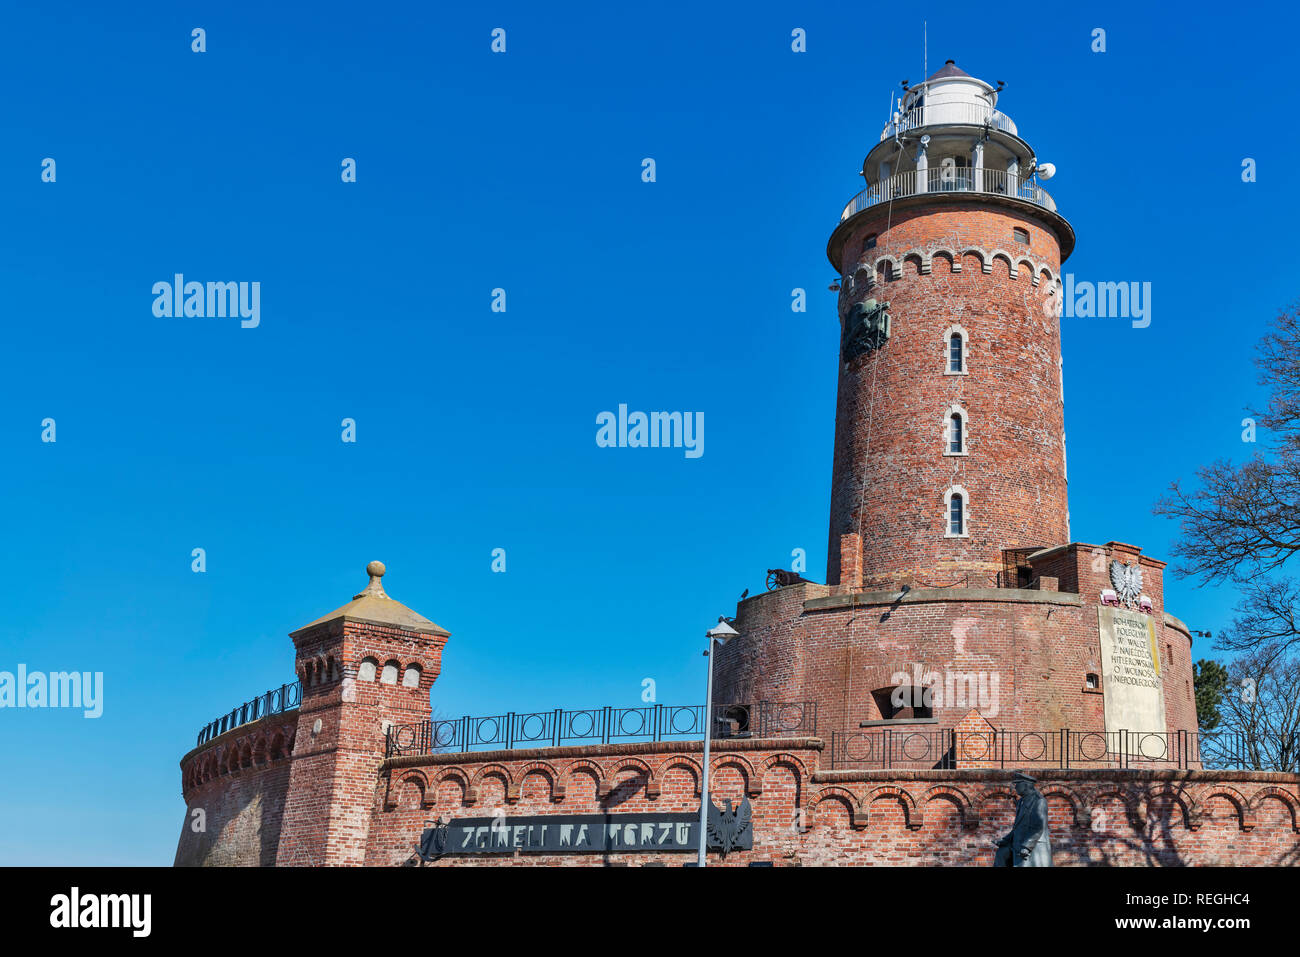 The lighthouse of Kolobrzeg is 26 metres high. It is located at the entrance to the port of Kolobrzeg, West Pomeranian, Poland, Europe - Stock Image